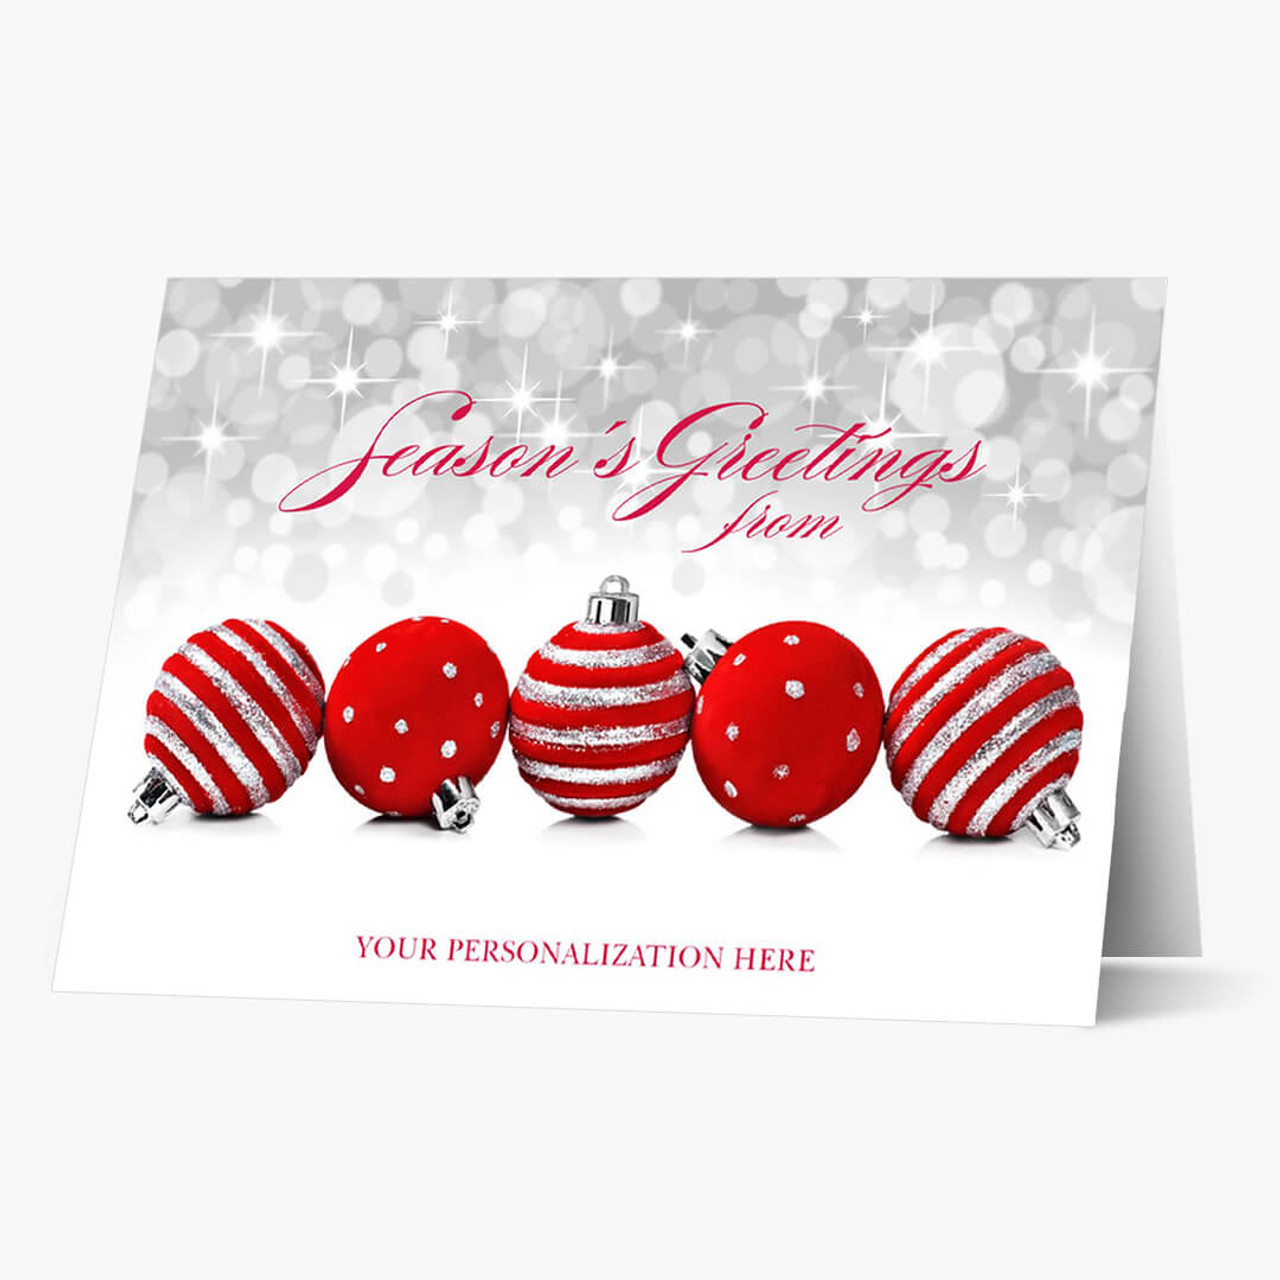 Sparkling Season Christmas Card